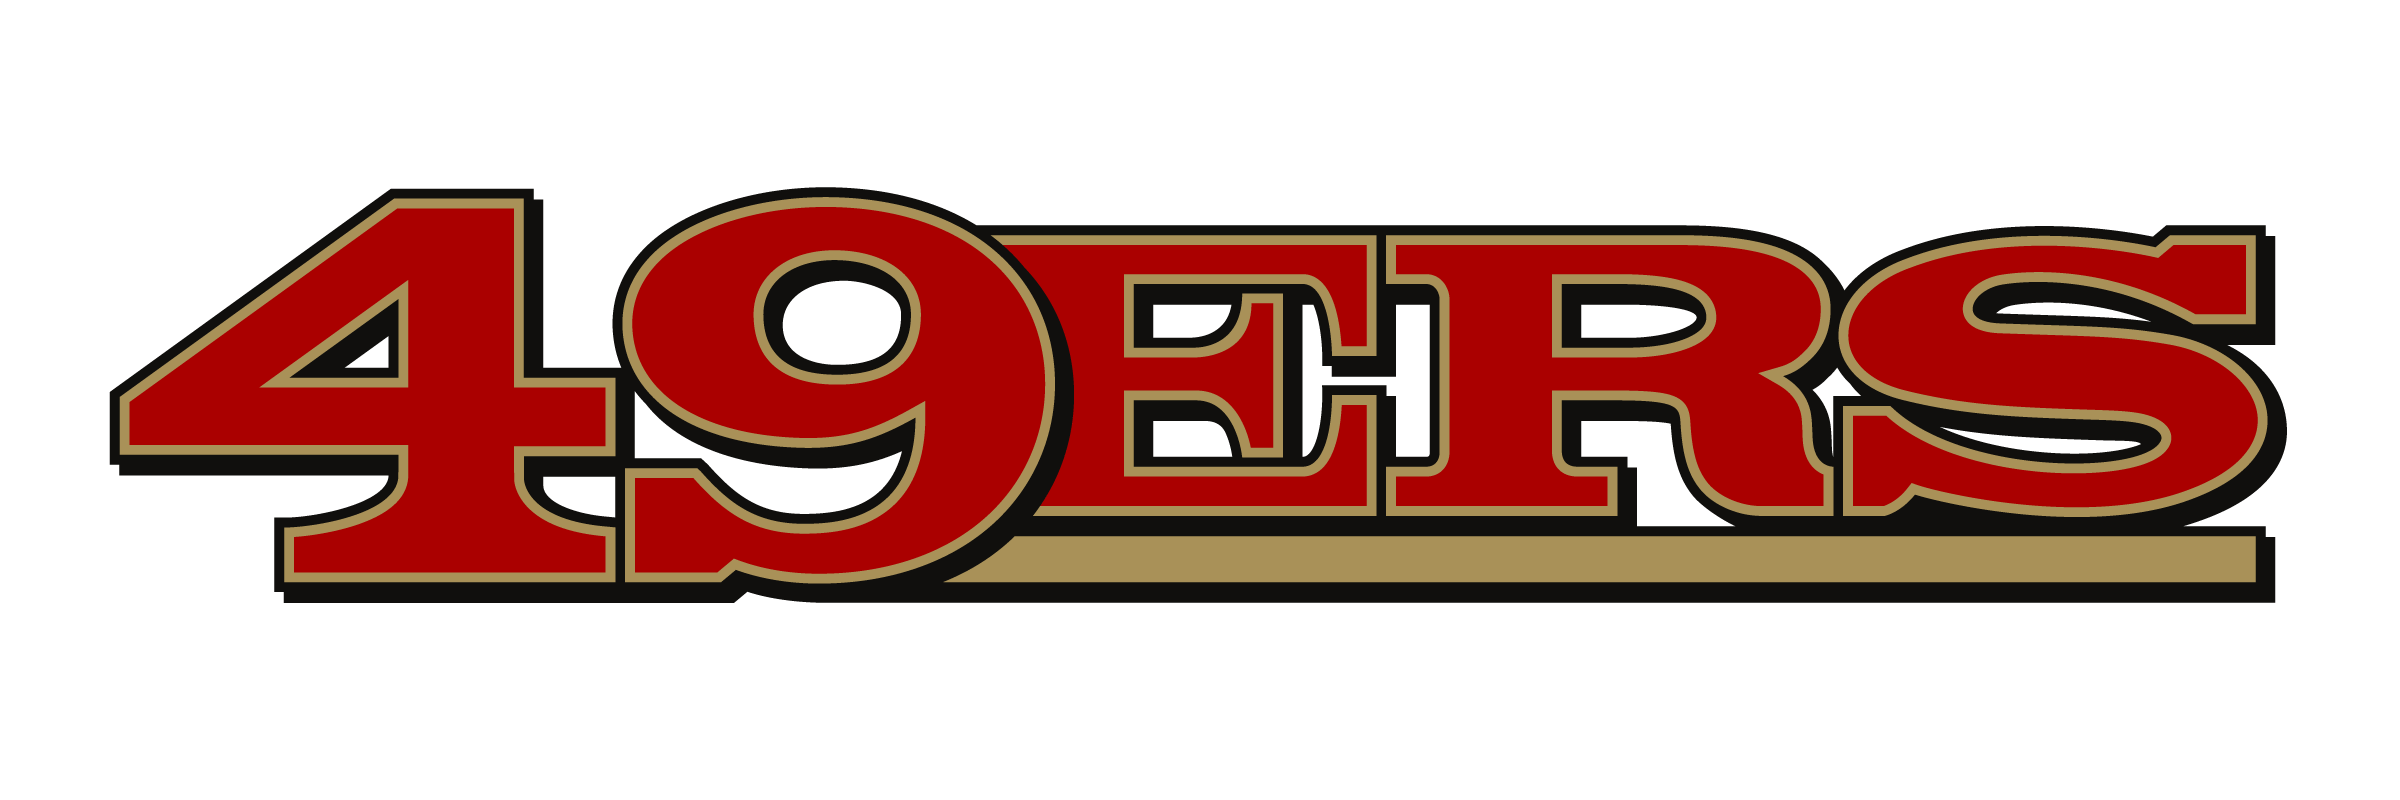 49ers drawing redesign. Sf ers clipart at